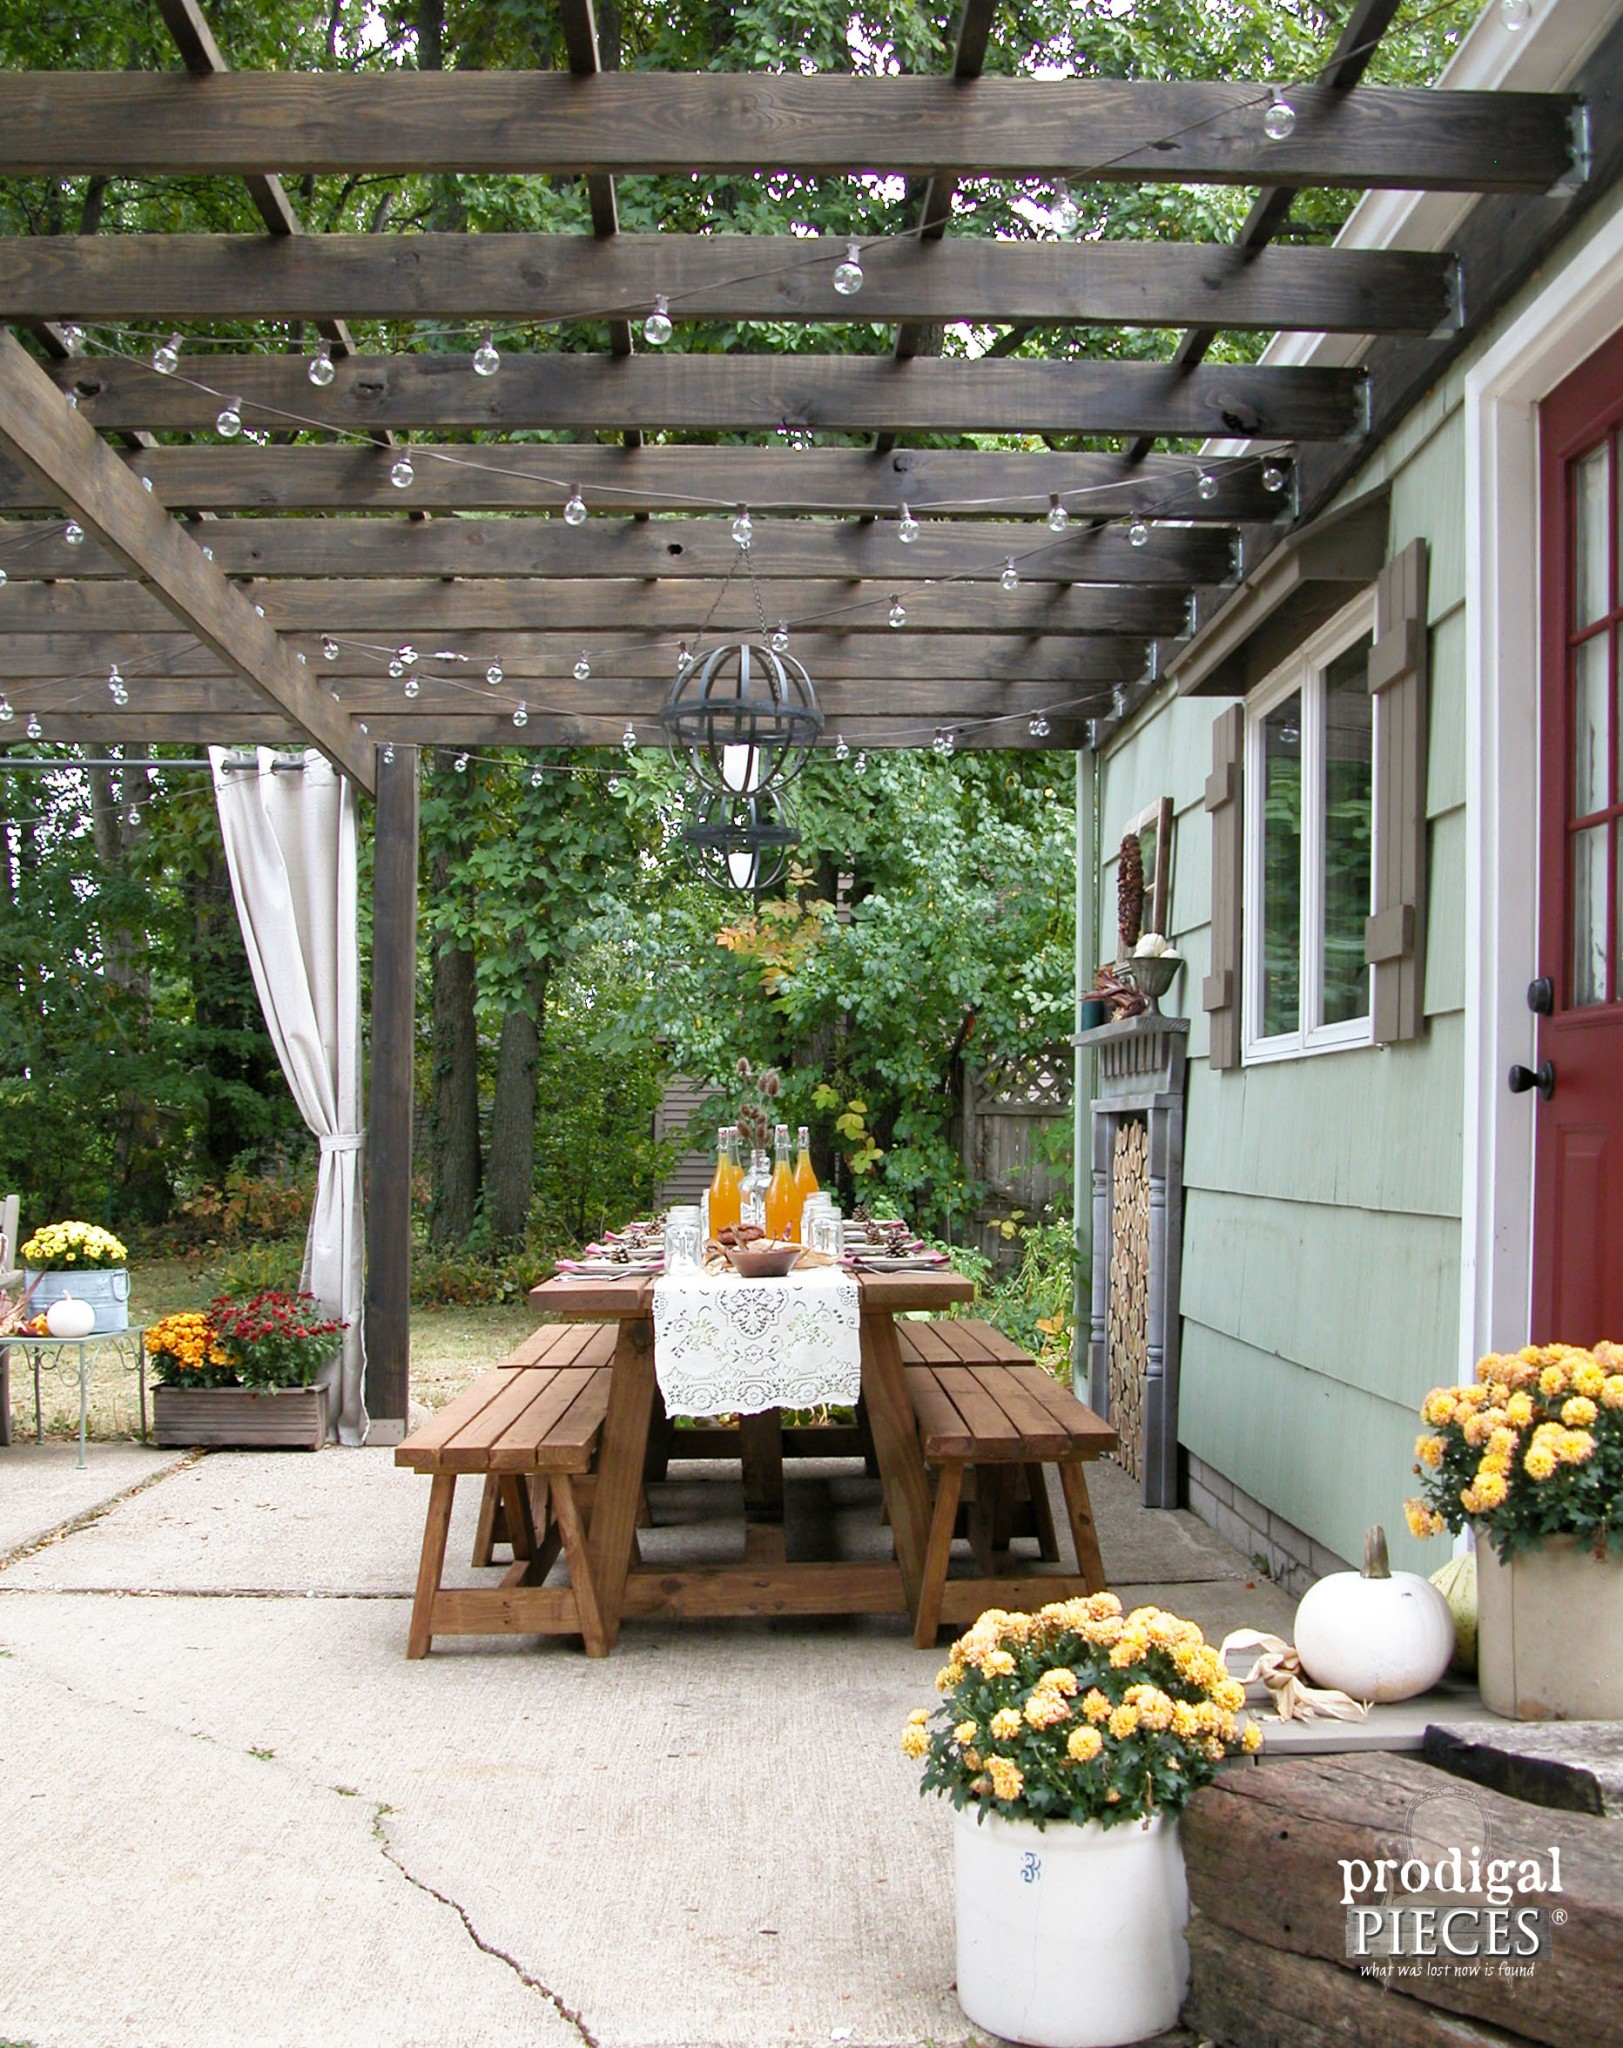 This DIY Patio Design With Pergola Features A Rustic And Repurposed Touches  With A Harvest Table